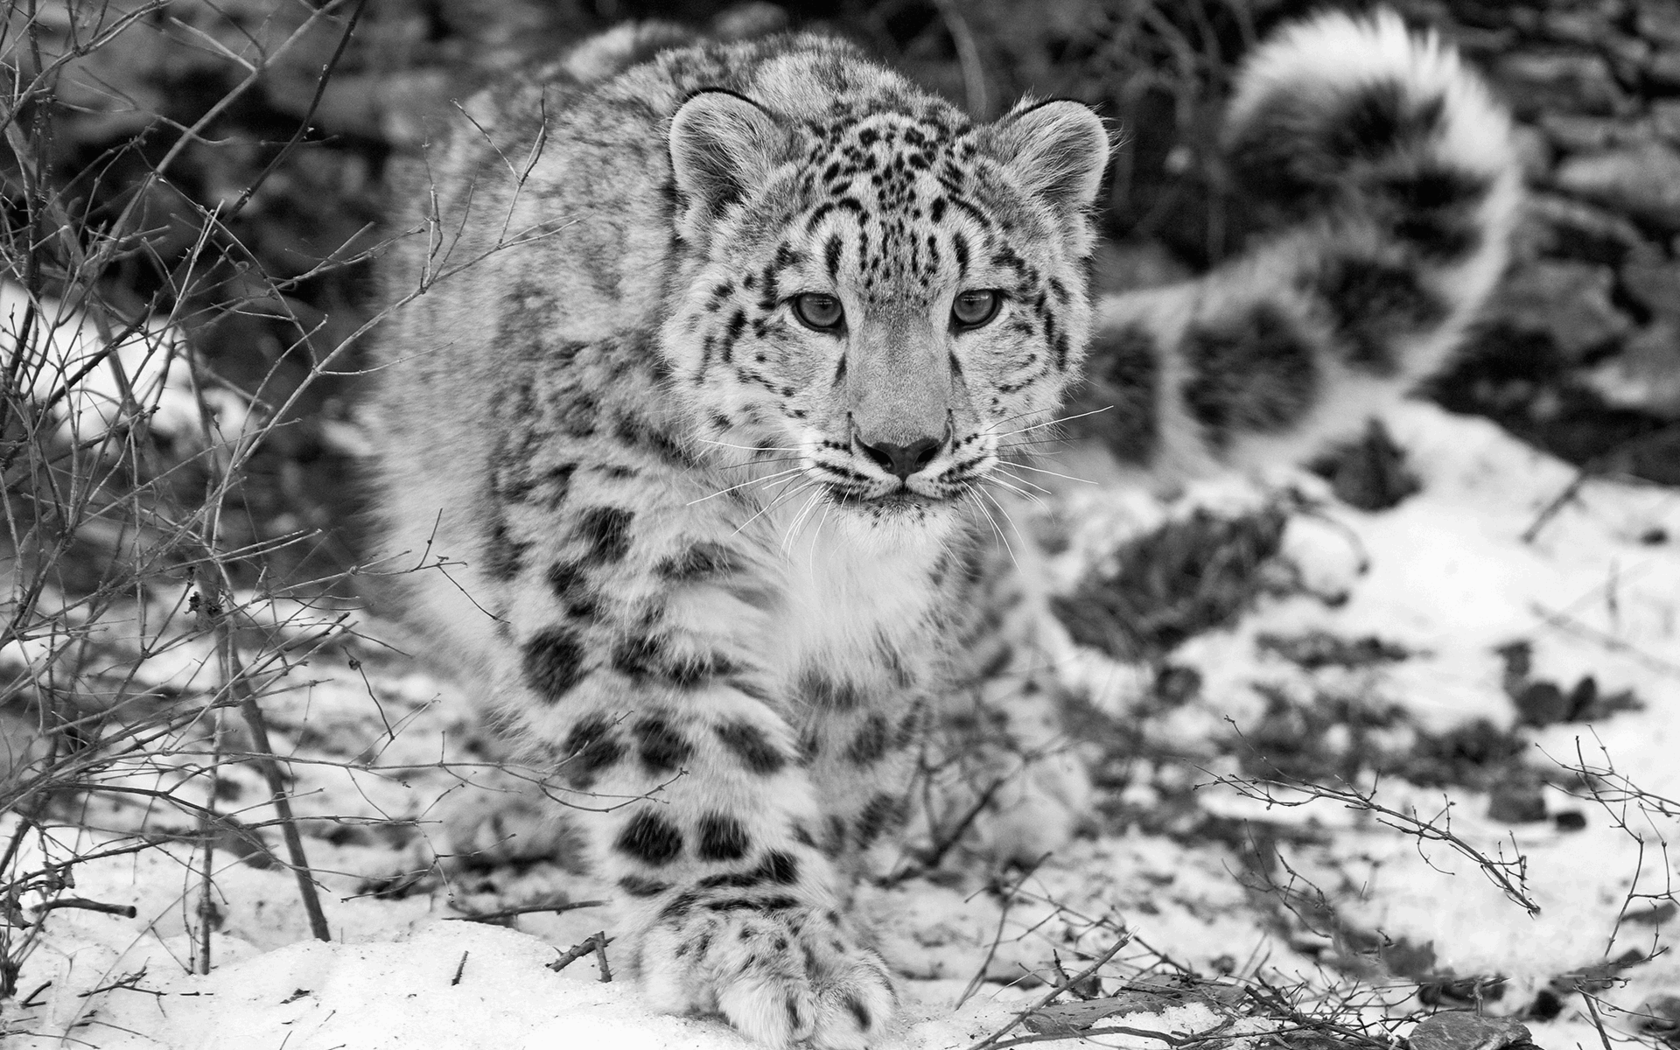 snow leapord For more than 10 years, shafqat hussain has been on the trail of the endangered snow leopard he has heard the beast's growl, and has seen its pugmarks against a snowy track but his dream, of coming eye-to-eye with the elusive nocturnal feline, remains unfulfilled if you've seen the cat, you've seen.